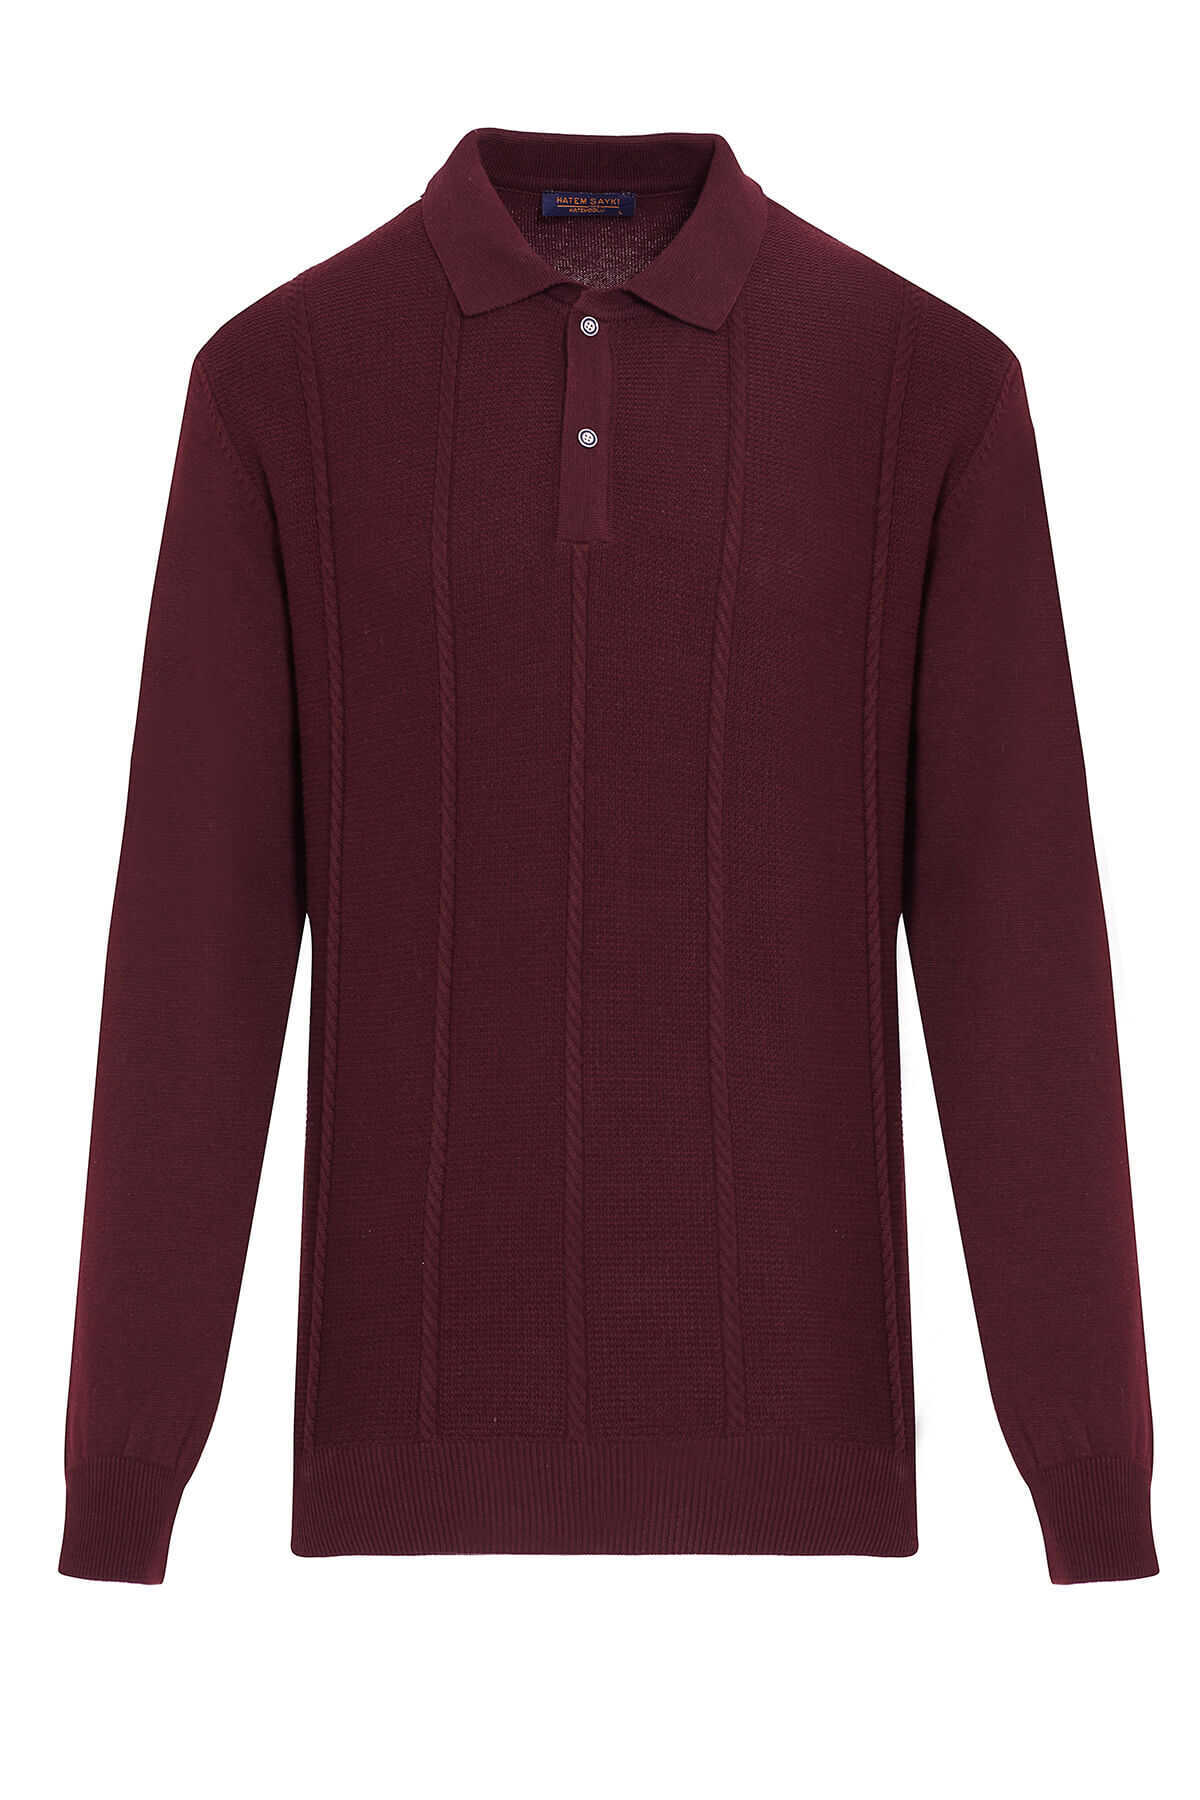 - Burgundy Polo Neck Buttoned Sweater